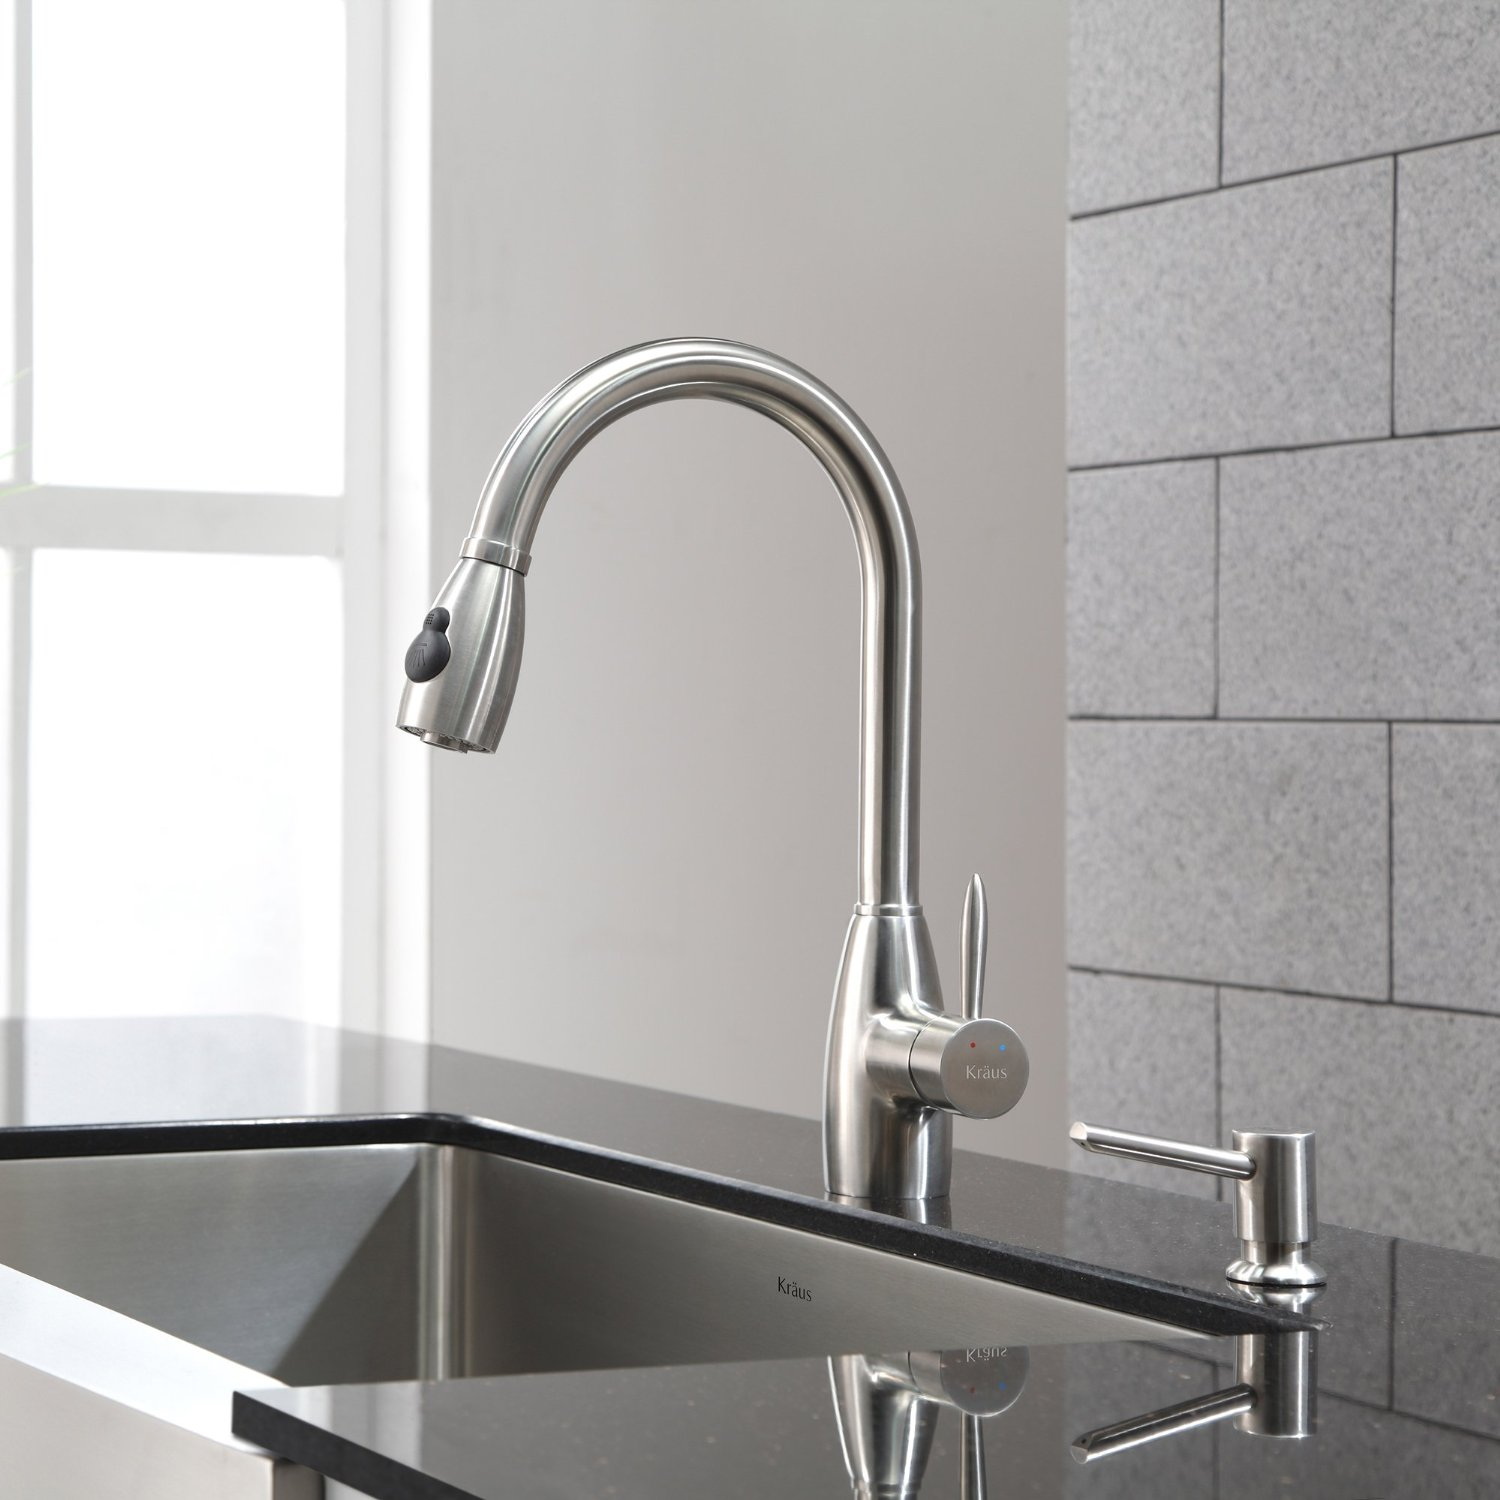 Kitchen faucet reviews kraus kpf 2130 bestkitchenfaucets for Top bathroom faucets 2016